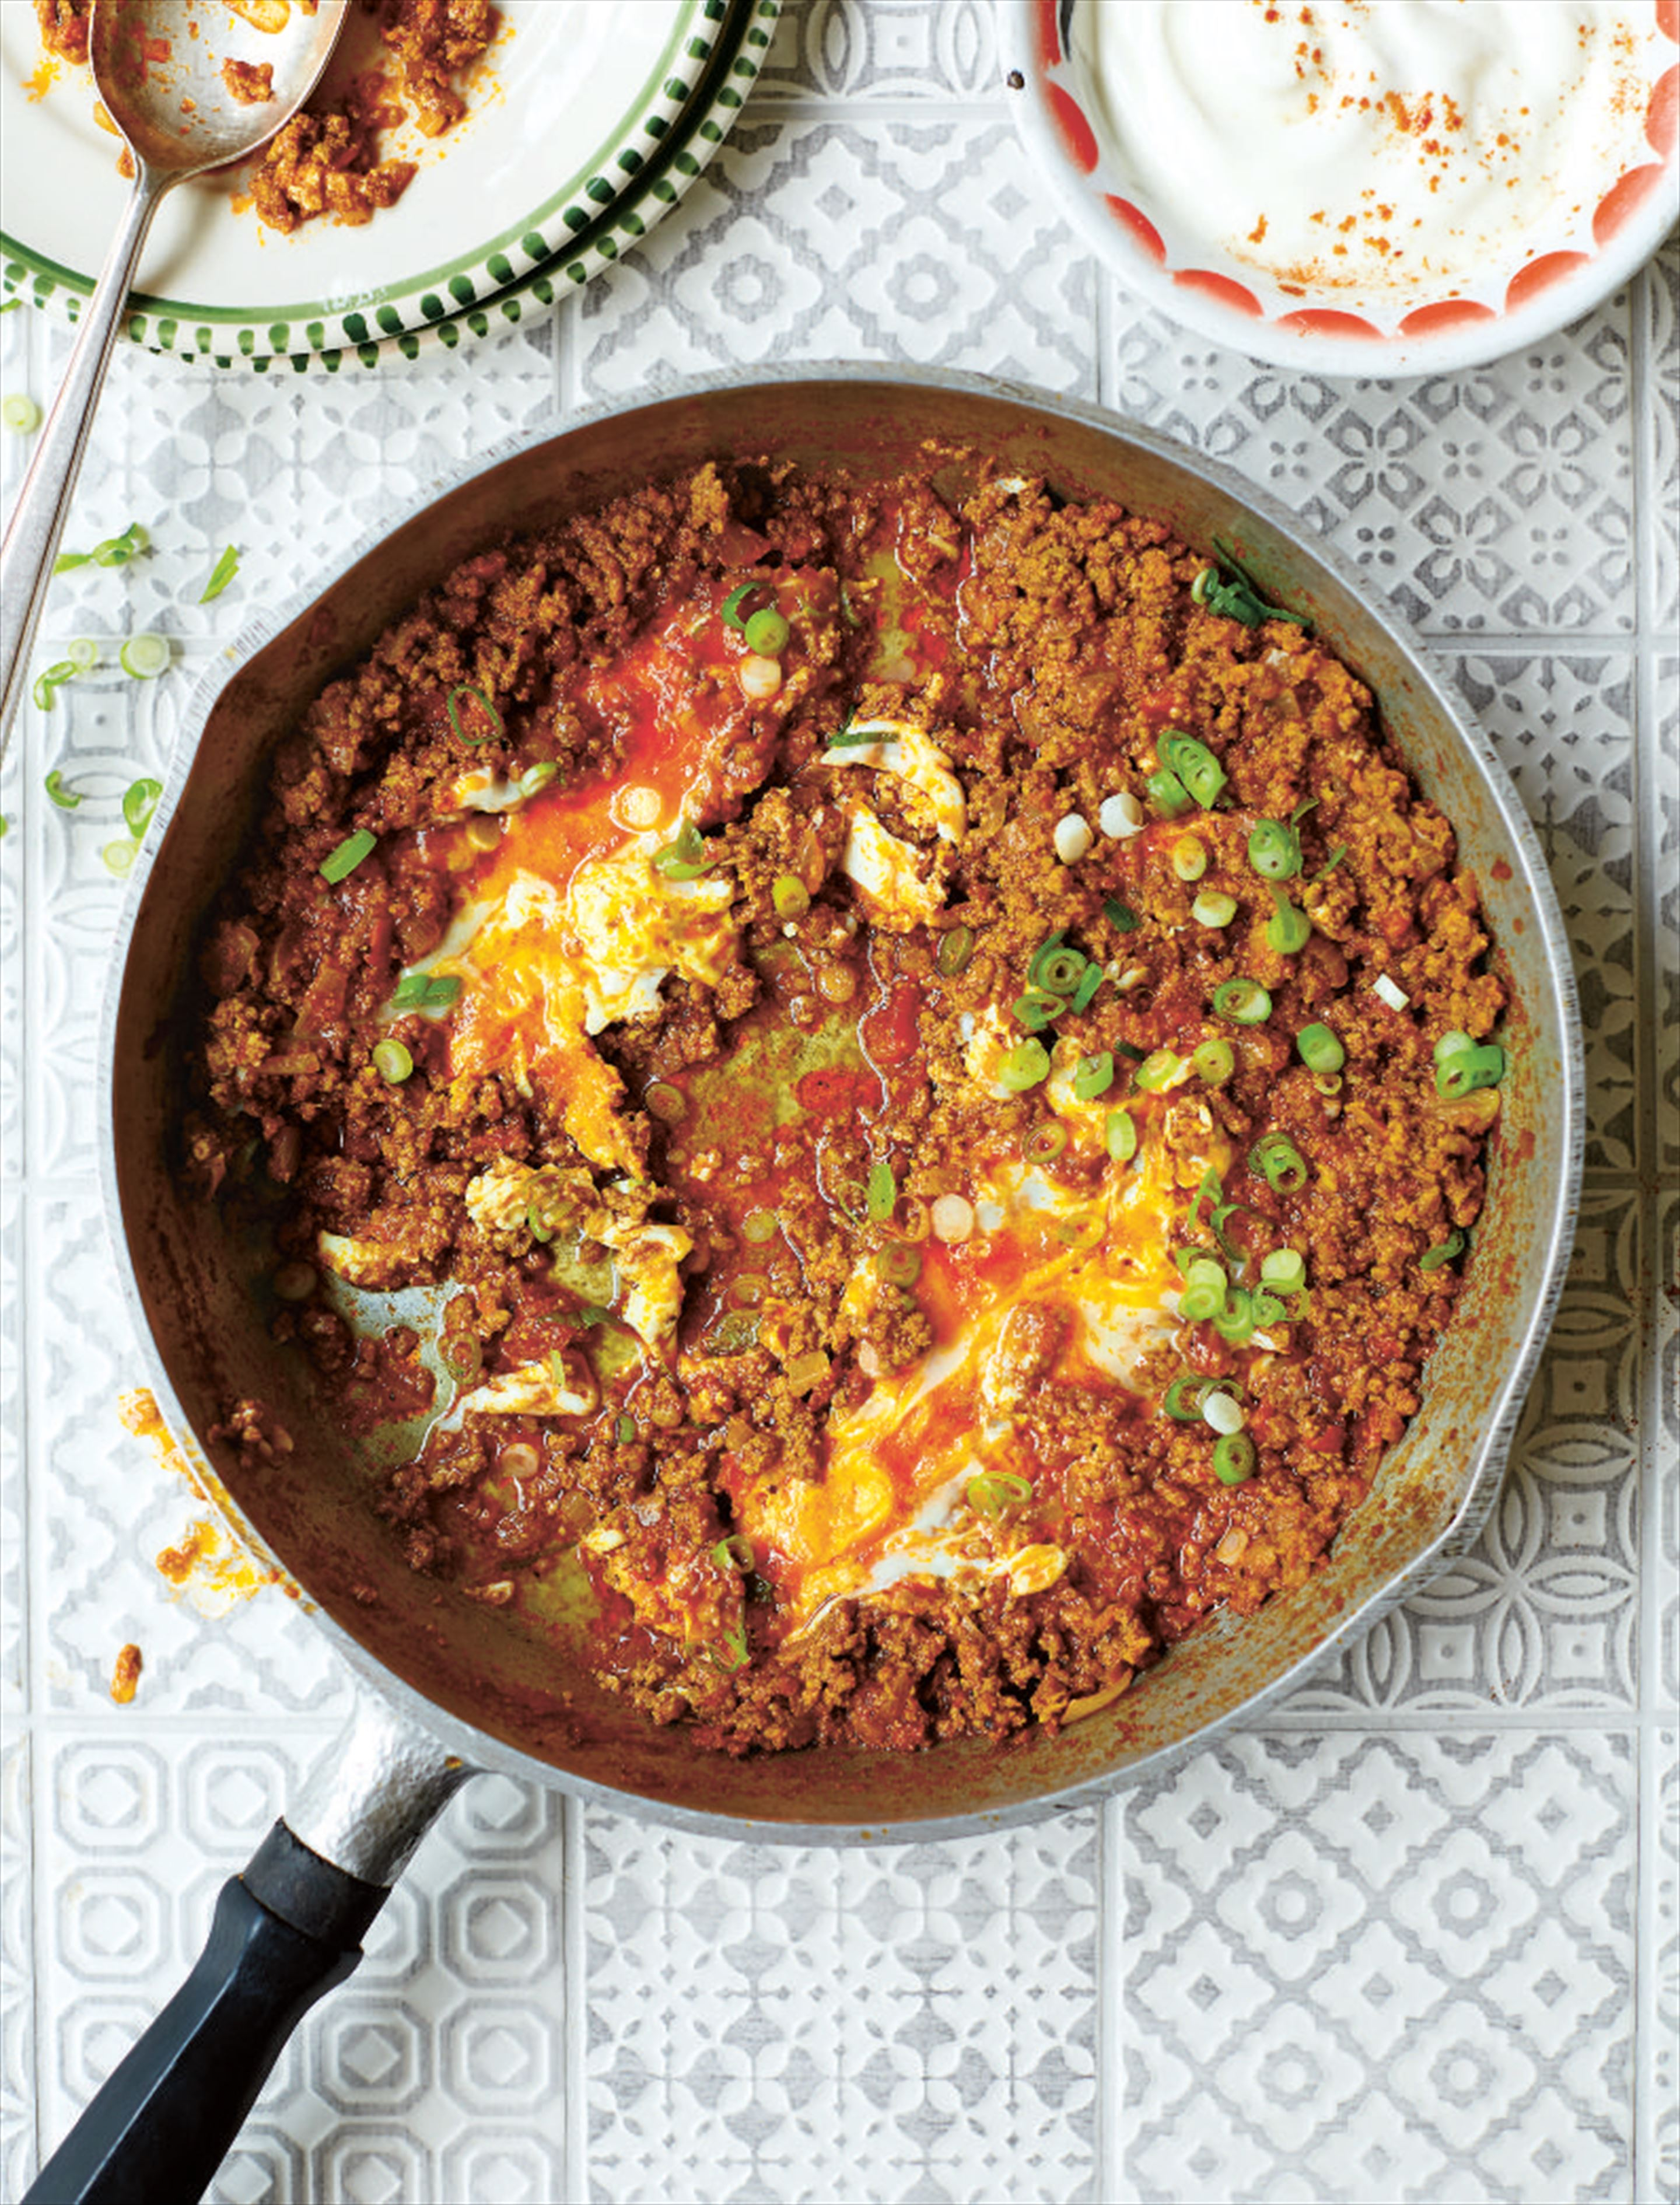 Spiced beef with eggs and spring onions